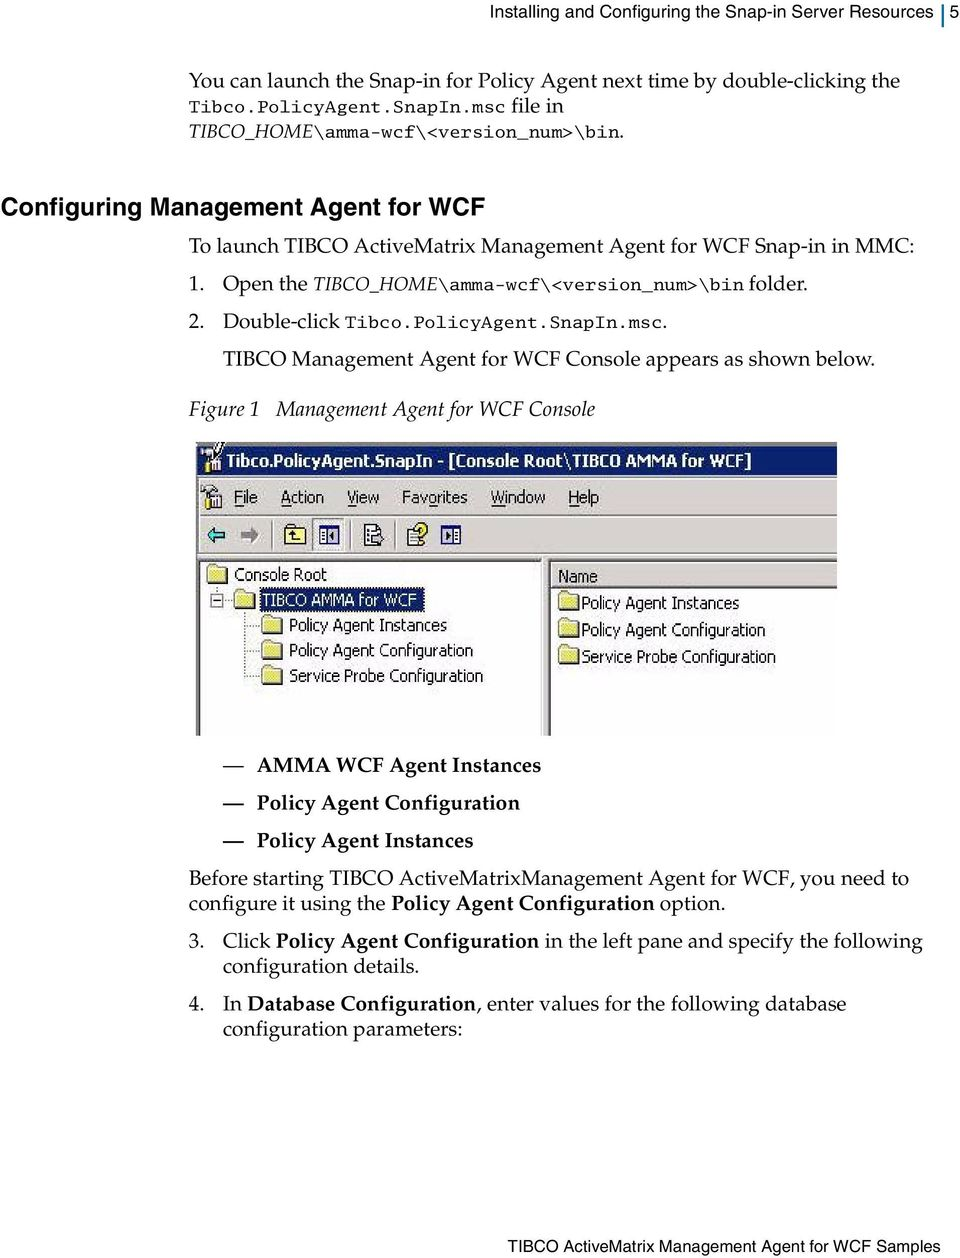 Open the TIBCO_HOME\amma-wcf\<version_num>\bin folder. 2. Double-click Tibco.PolicyAgent.SnapIn.msc. TIBCO Management Agent for WCF Console appears as shown below.